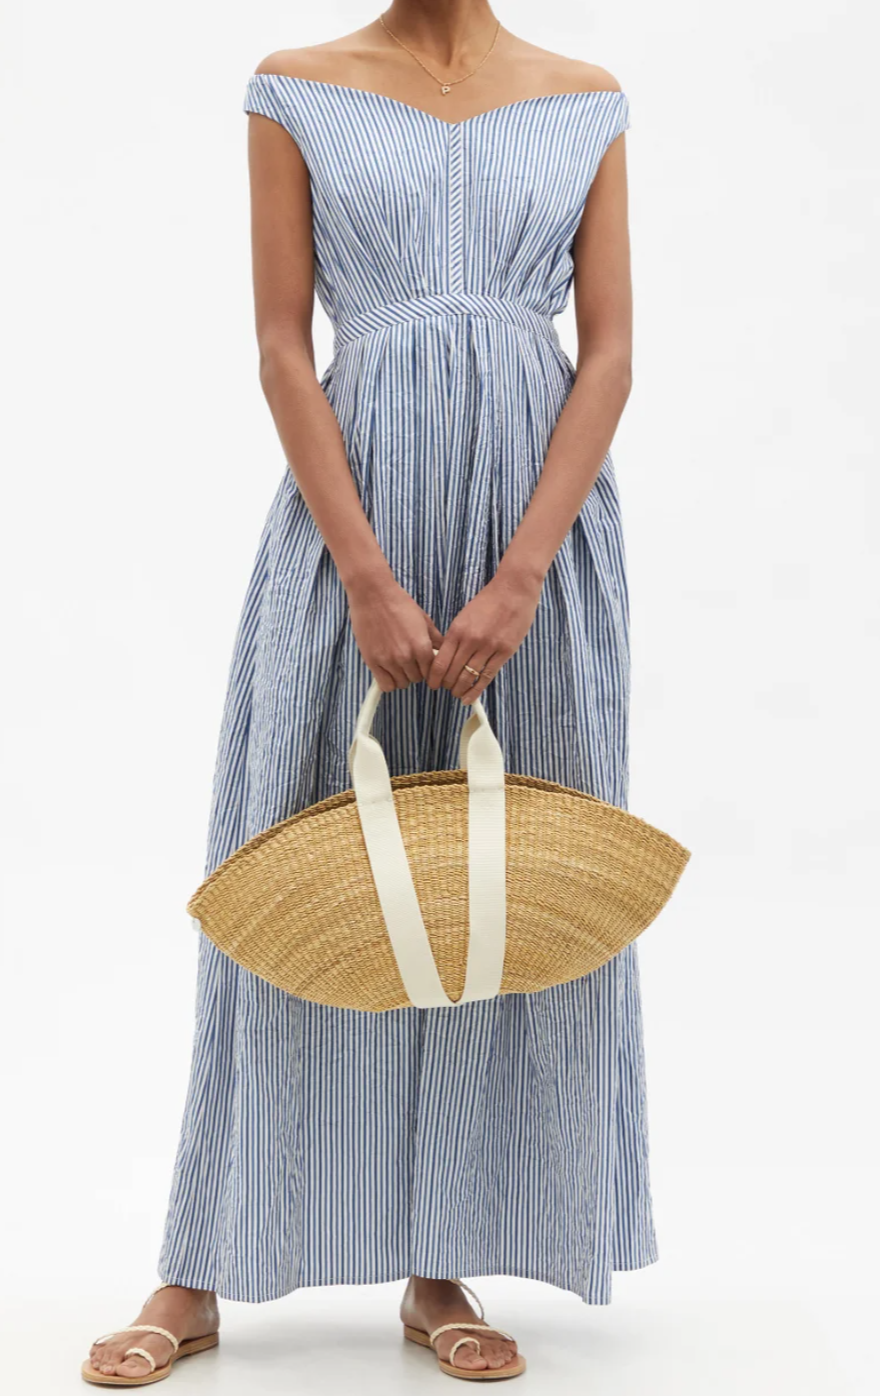 How to style striped maxi dress